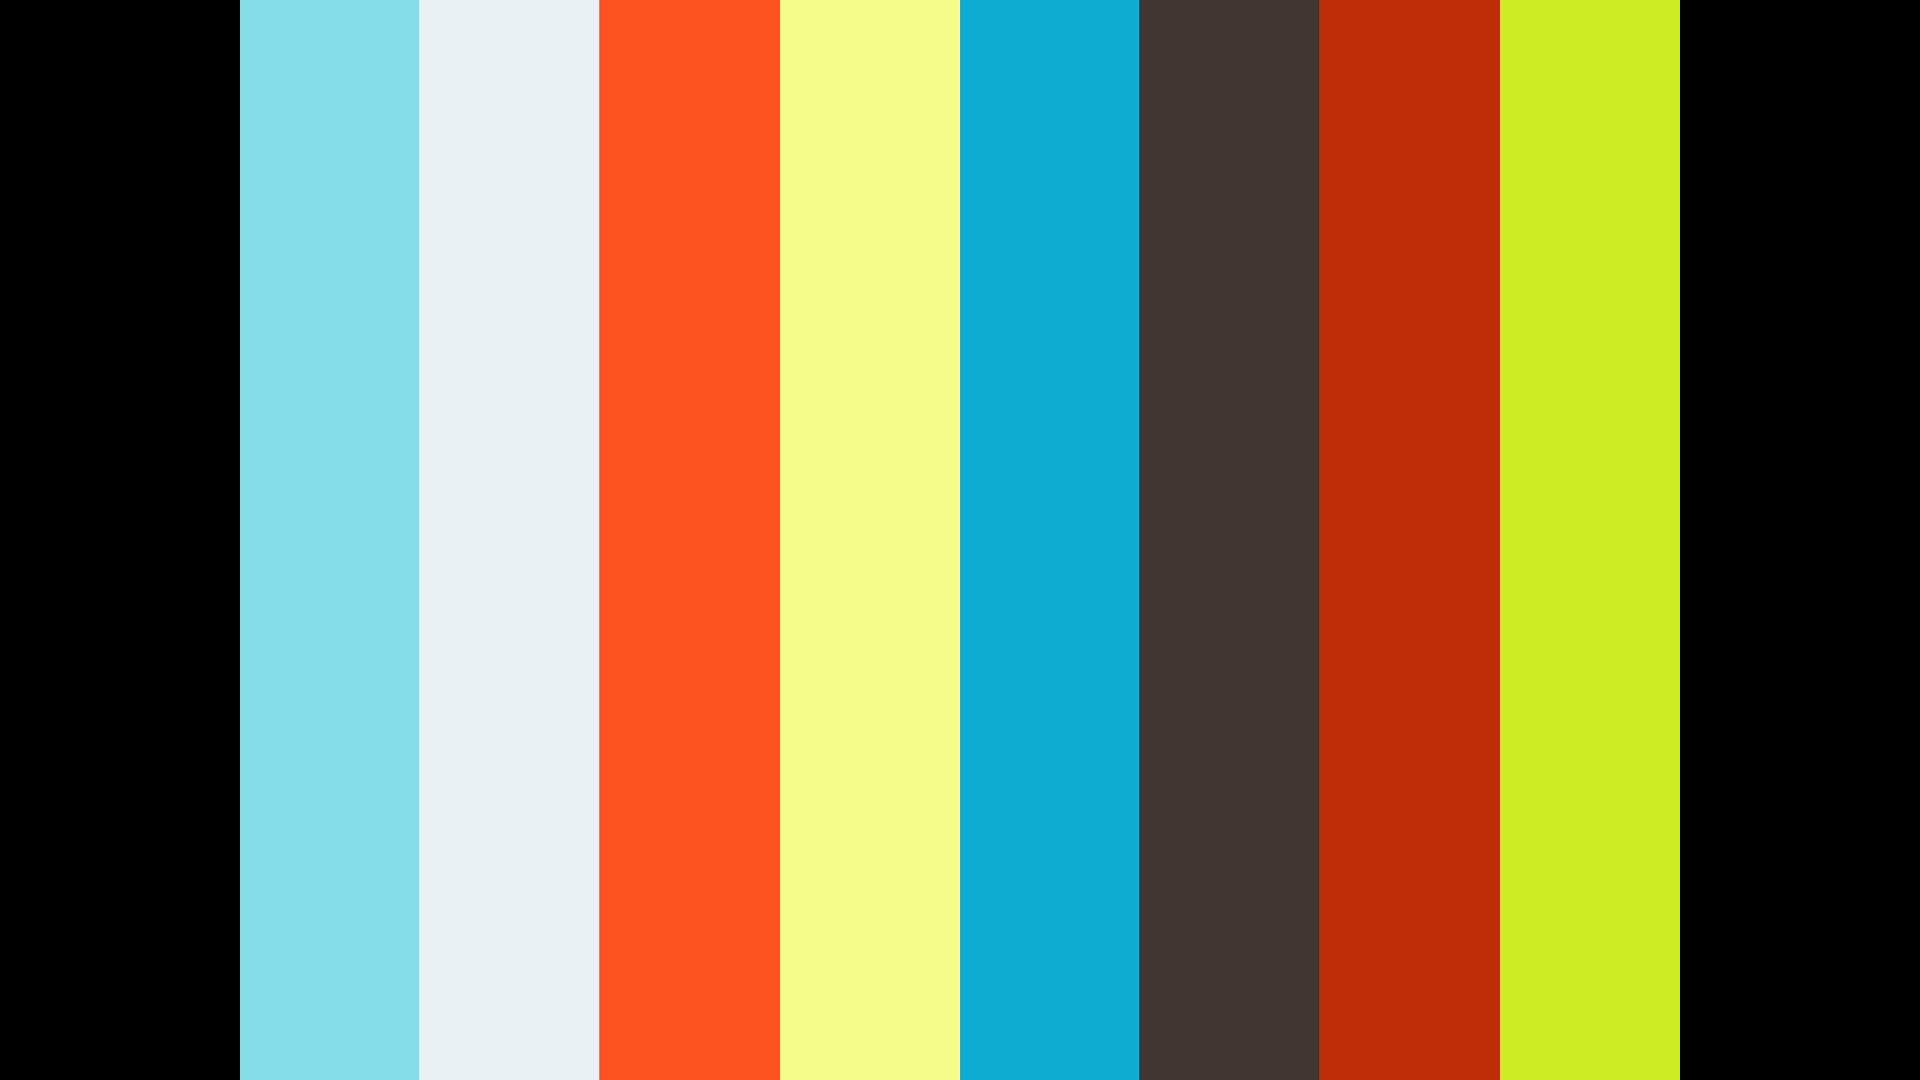 Strathmore Park Wedding in Simi Valley of Kelly and Robert with Y-it Entertainment